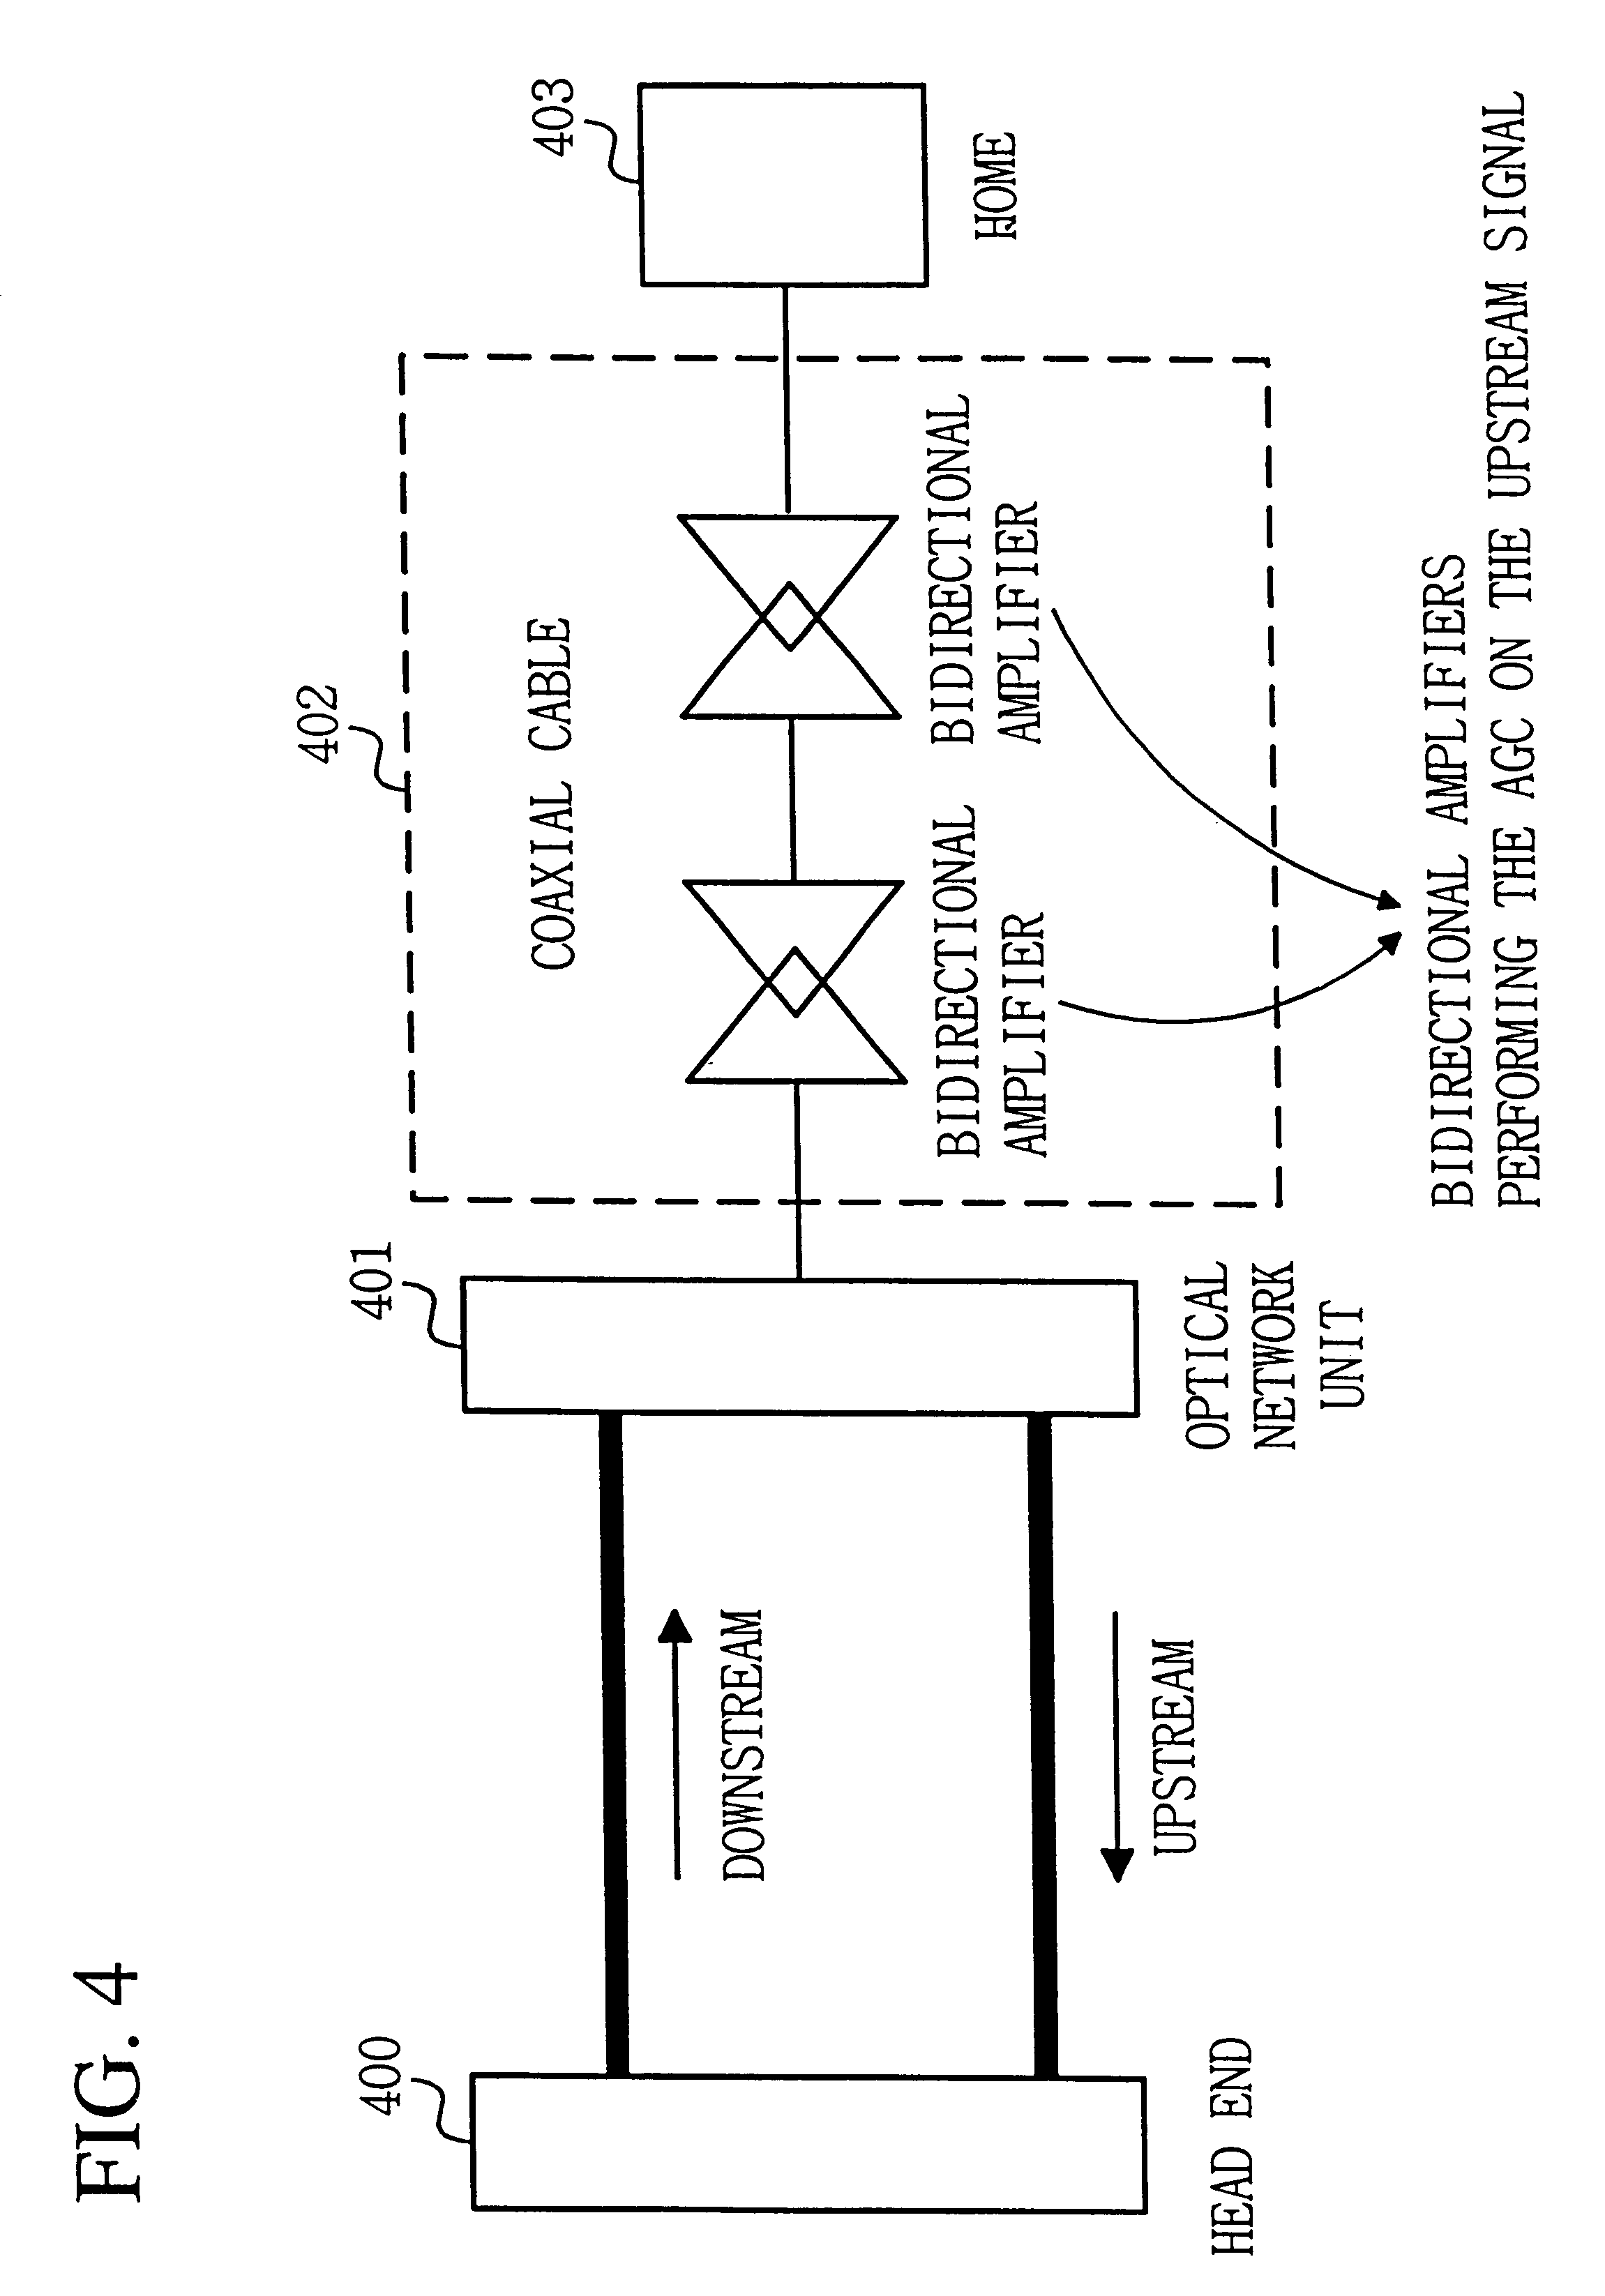 Patent Us6678893 Bidirectional Trunk Amplifier And Cable Modem For Coax Schematic Drawing